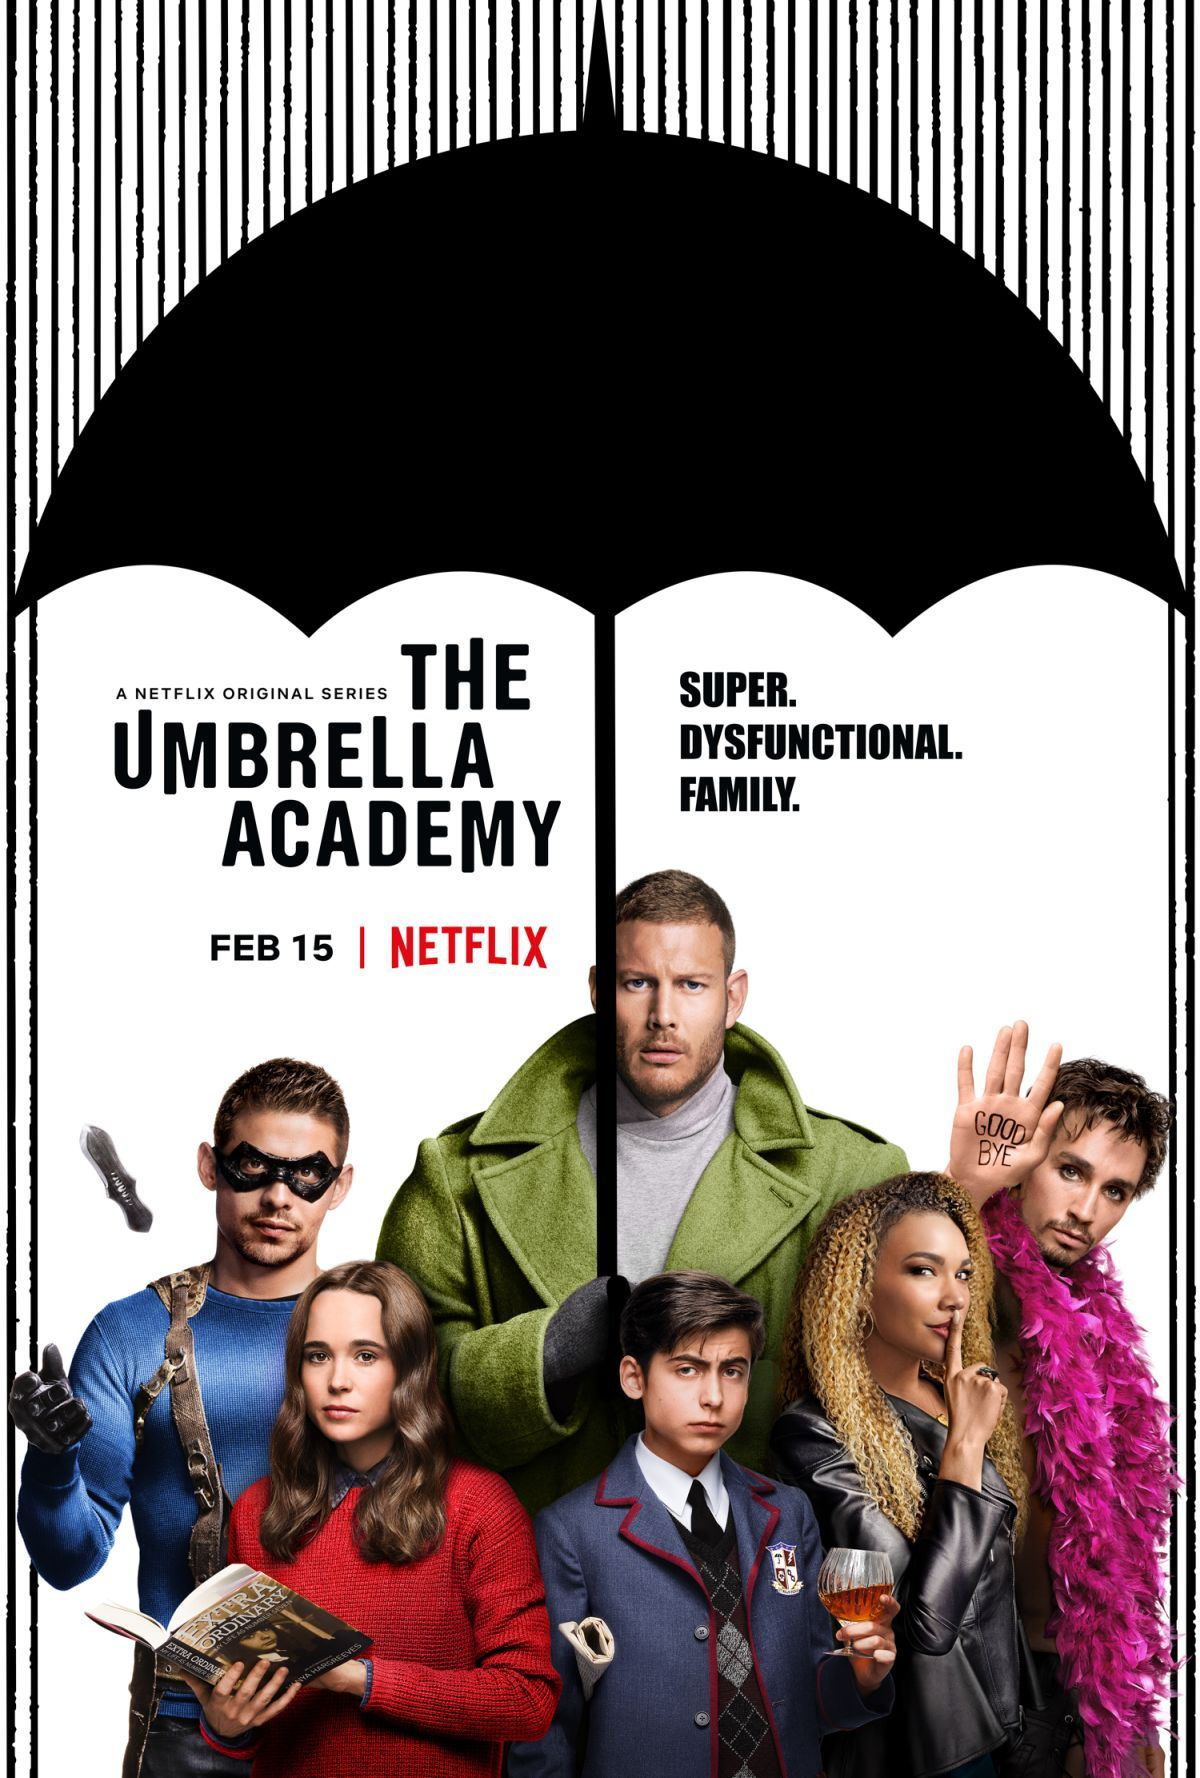 The Umbrella Academy S01 E09 Cut